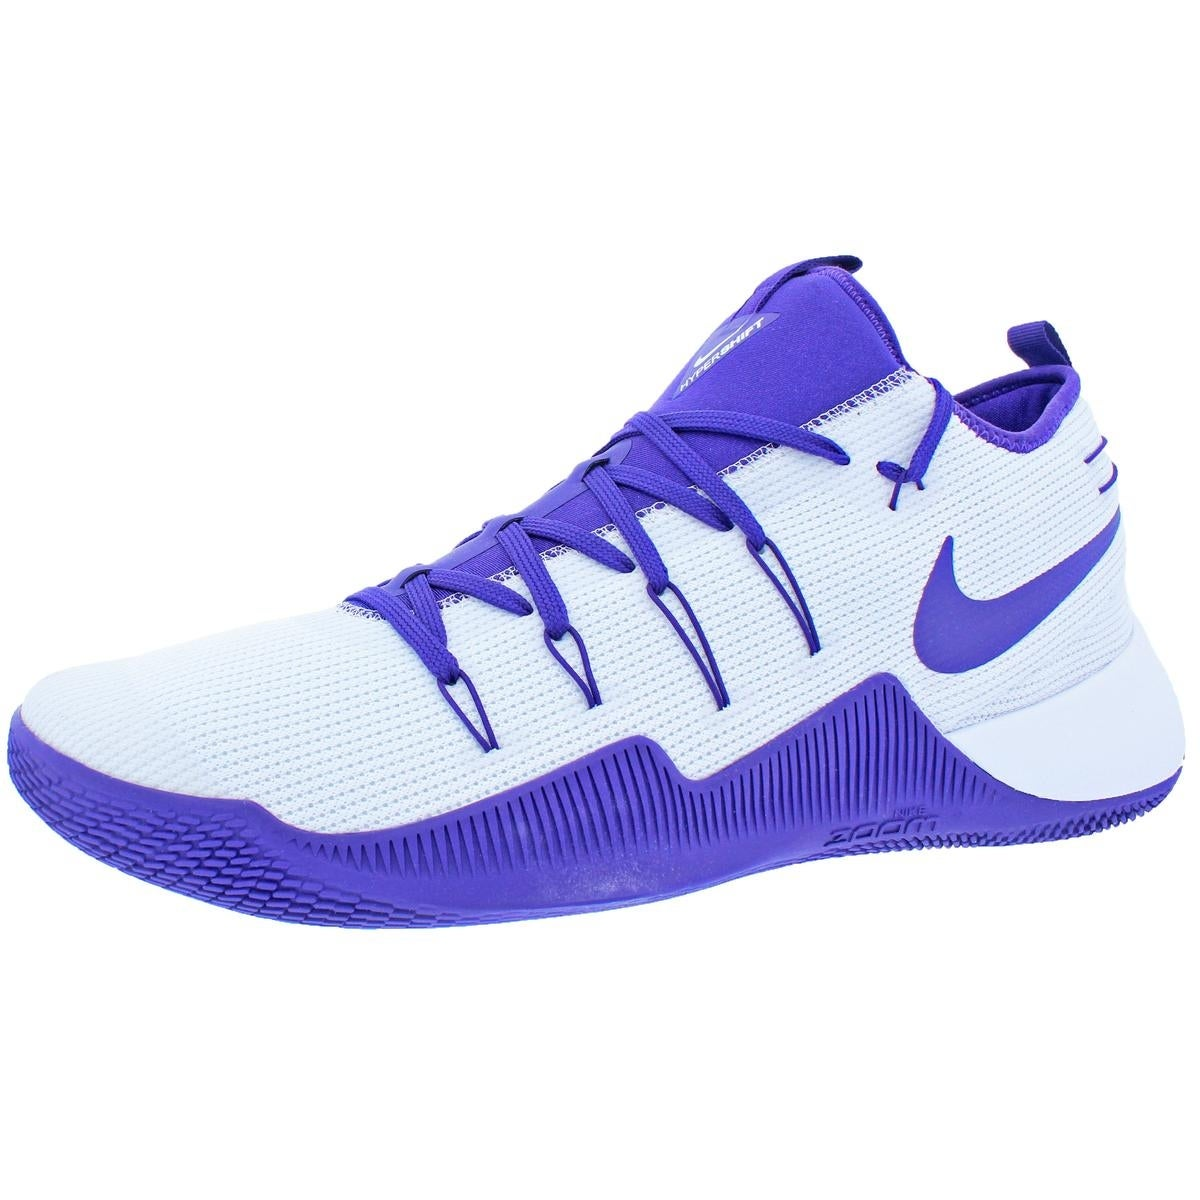 first rate b021b 538b4 ... official store shop nike mens hypershift tb promo basketball shoes mid  top nike zoom free shipping